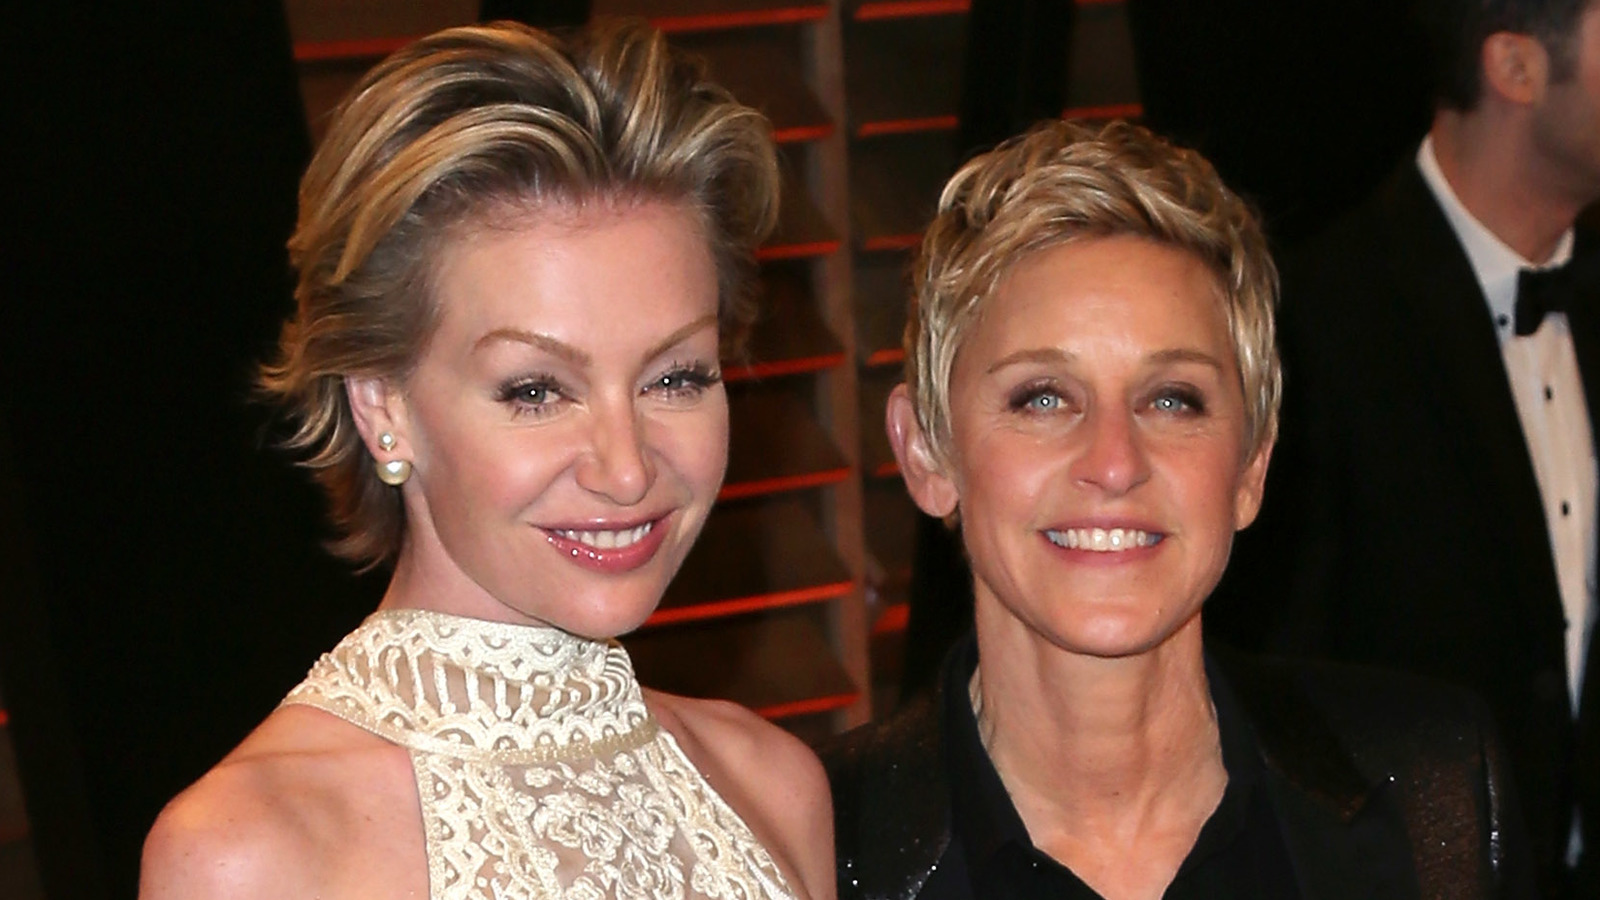 The truth about Ellen and Portia's wedding